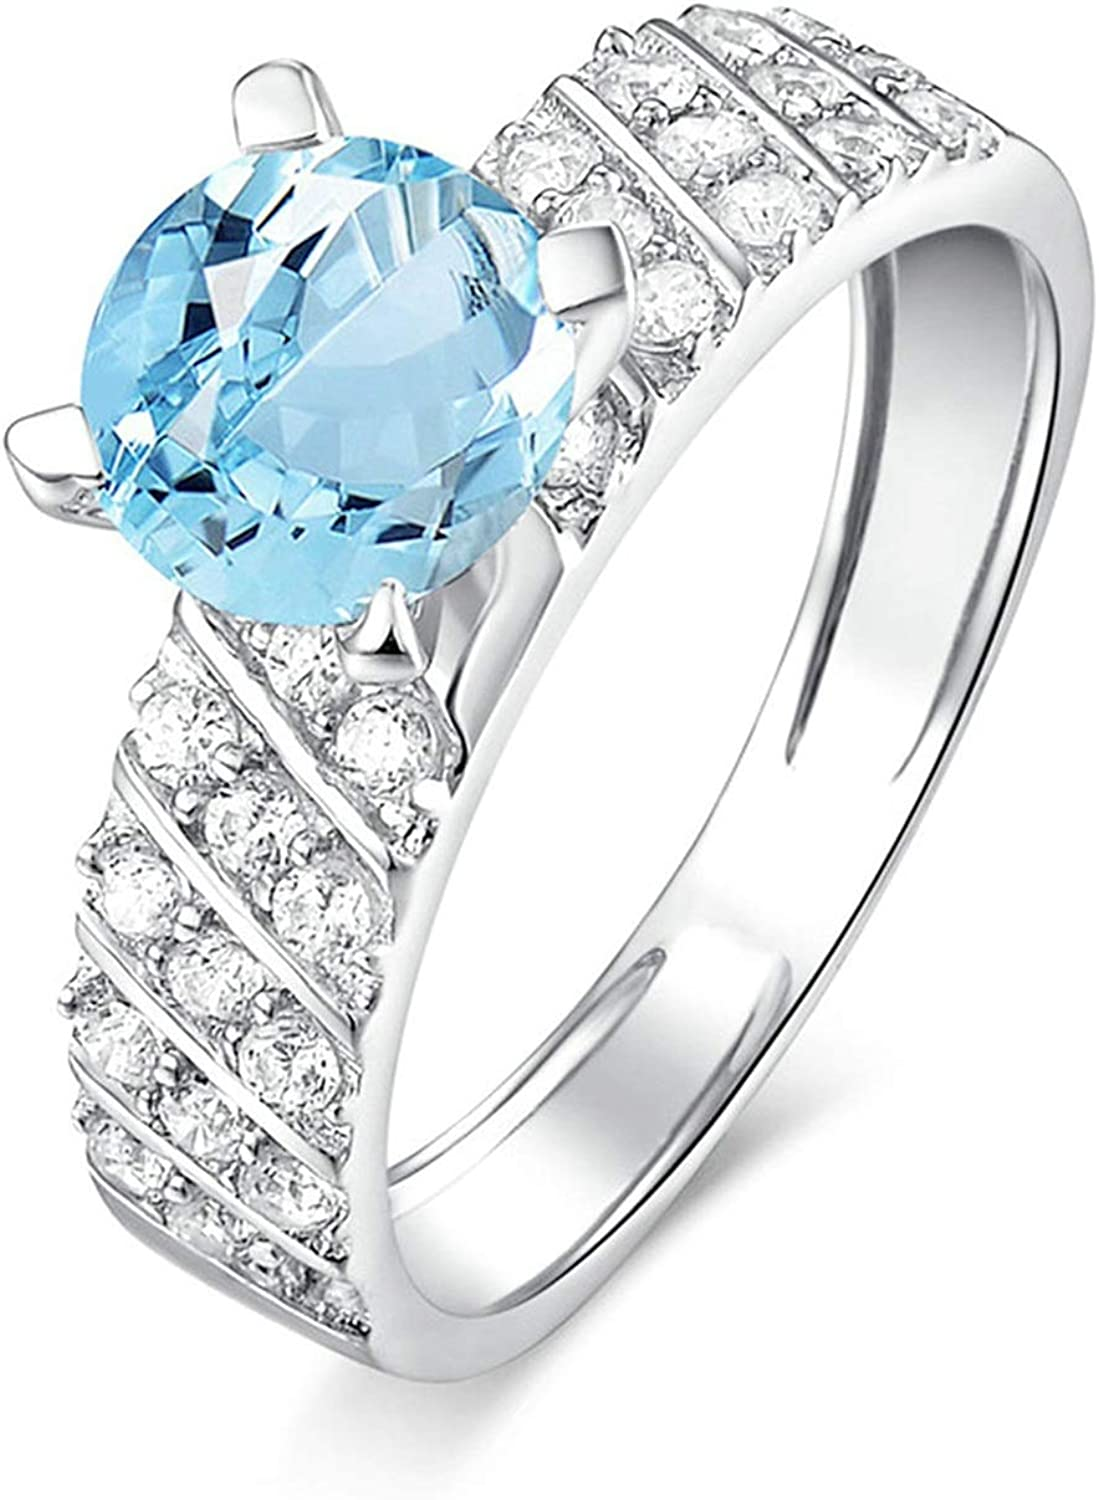 AMDXD Jewelry 925 Sterling Silver Wedding Rings for Women Blue Round Cut Topaz 4 Claw Round Ring